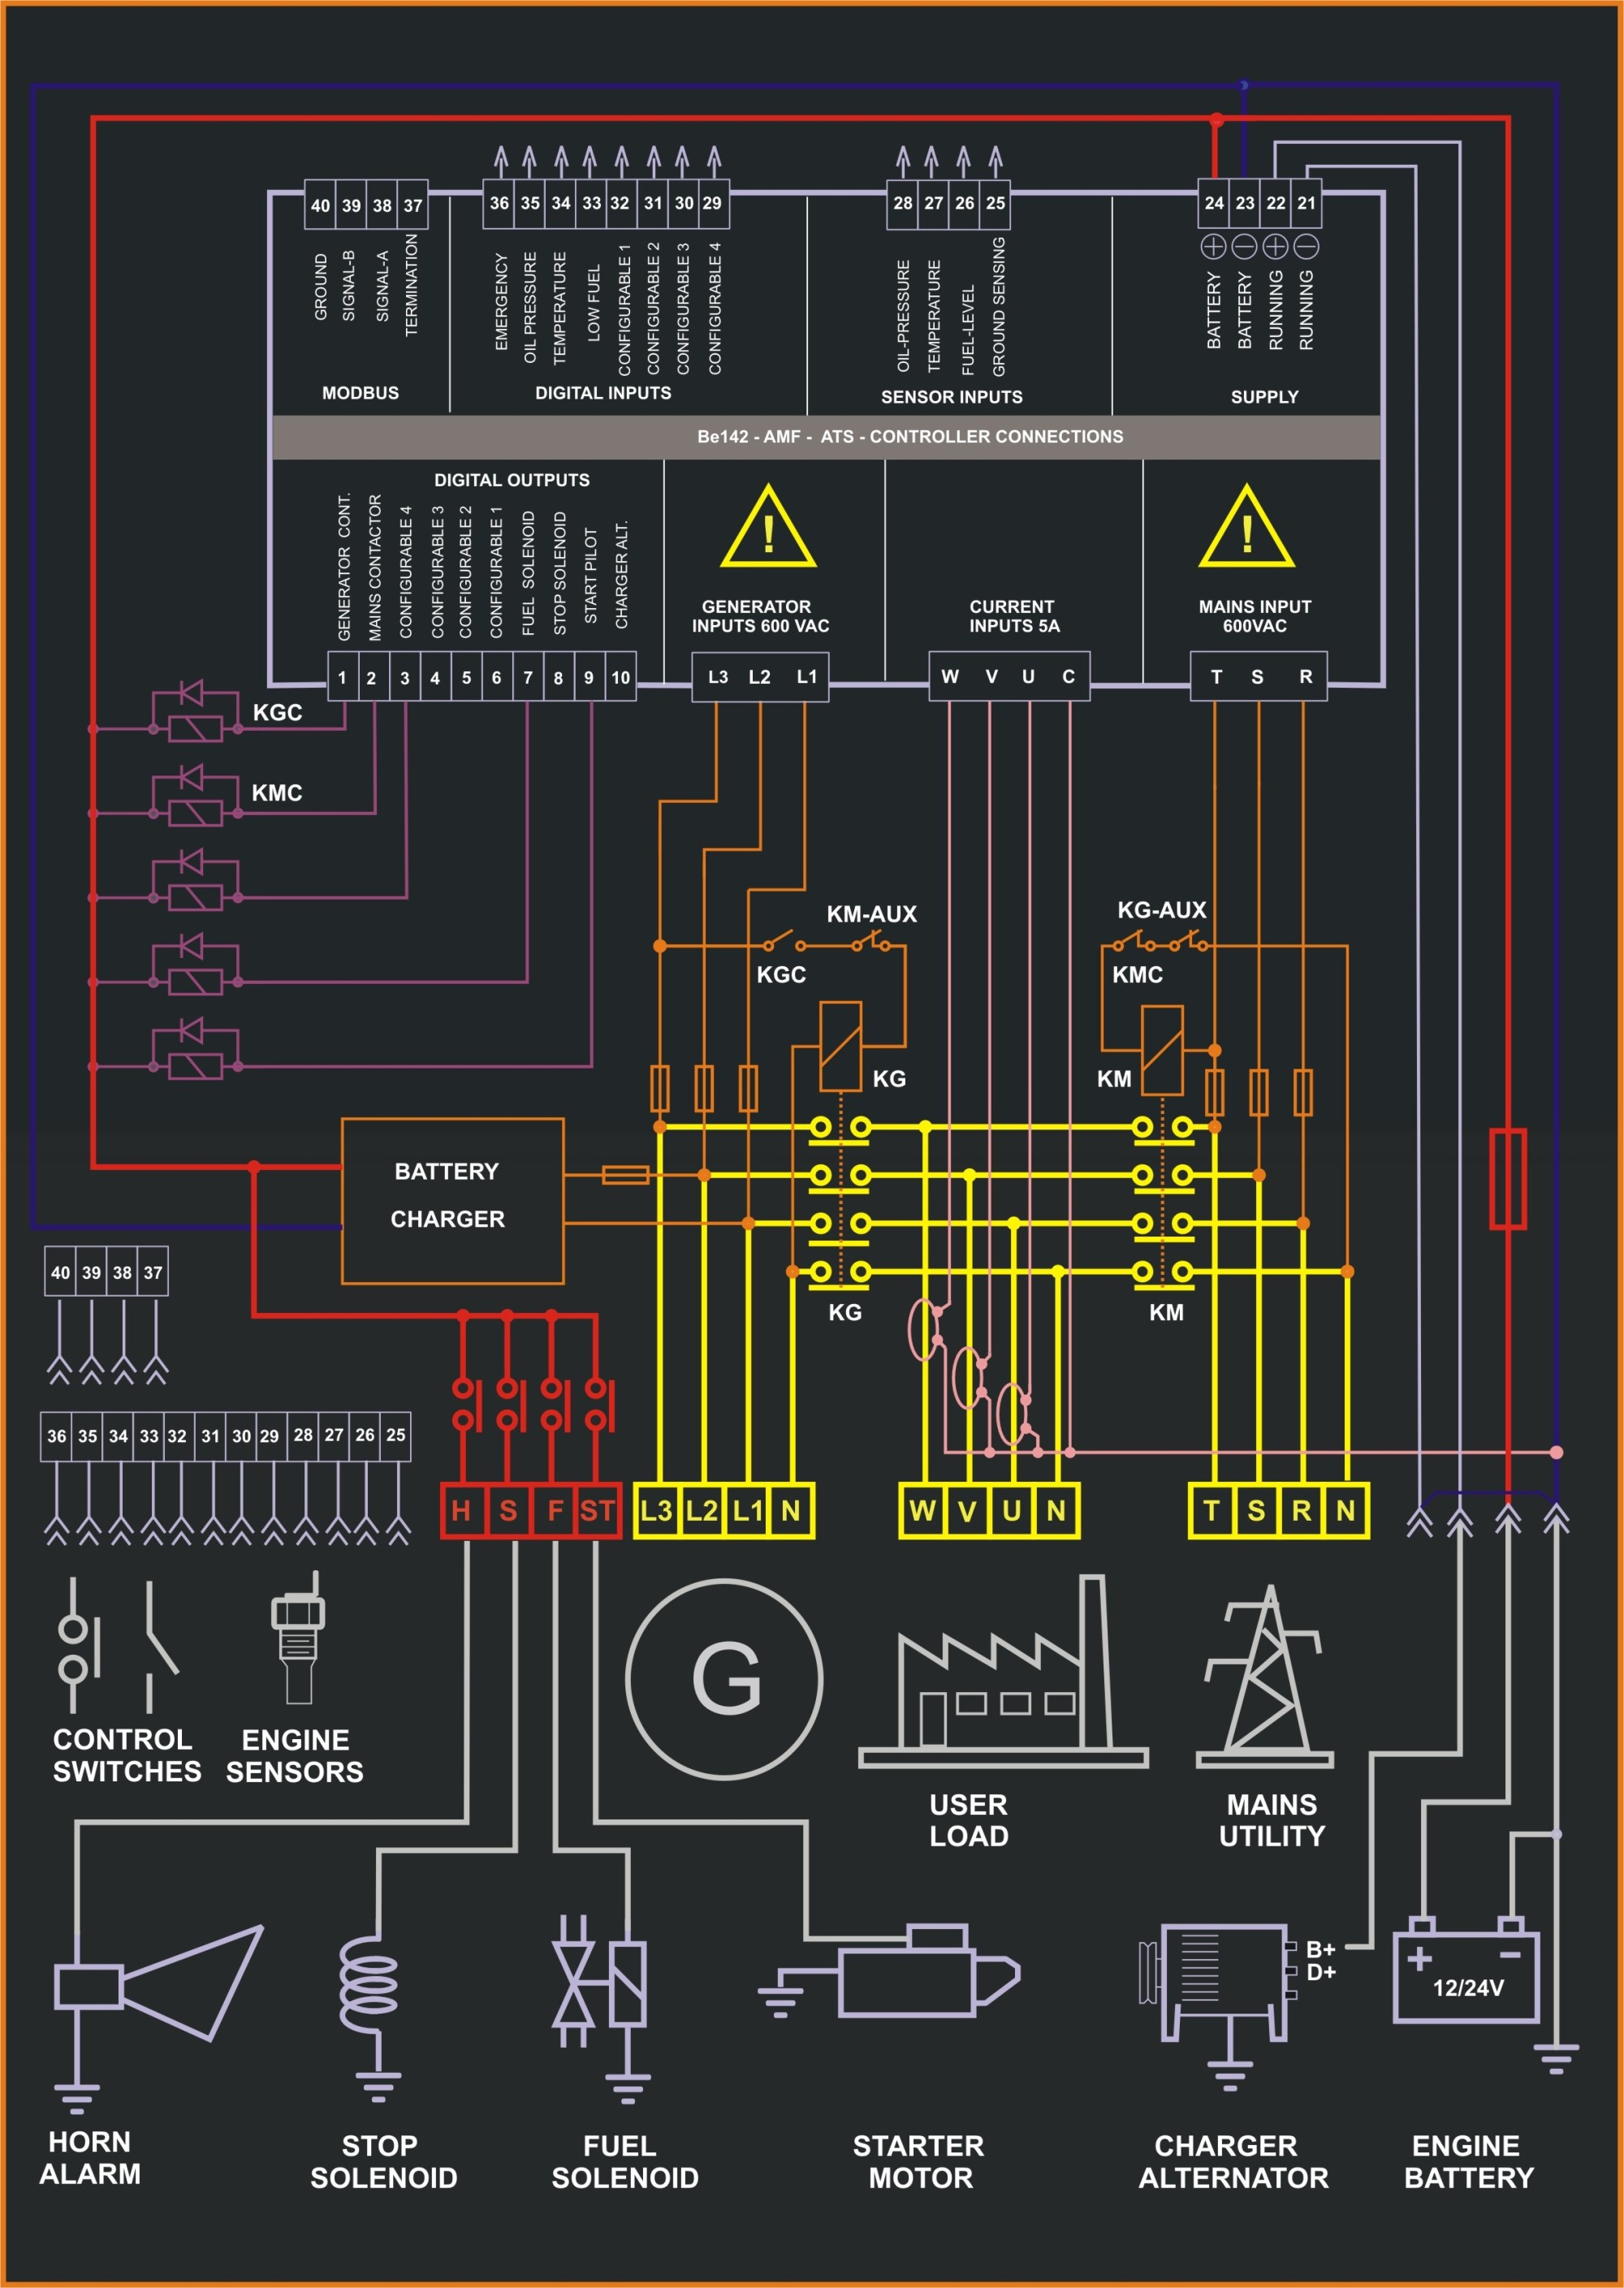 hight resolution of lighting control panel wiring diagram wiring diagram rh a3 ansolsolder co emergency lighting wiring diagram lighting